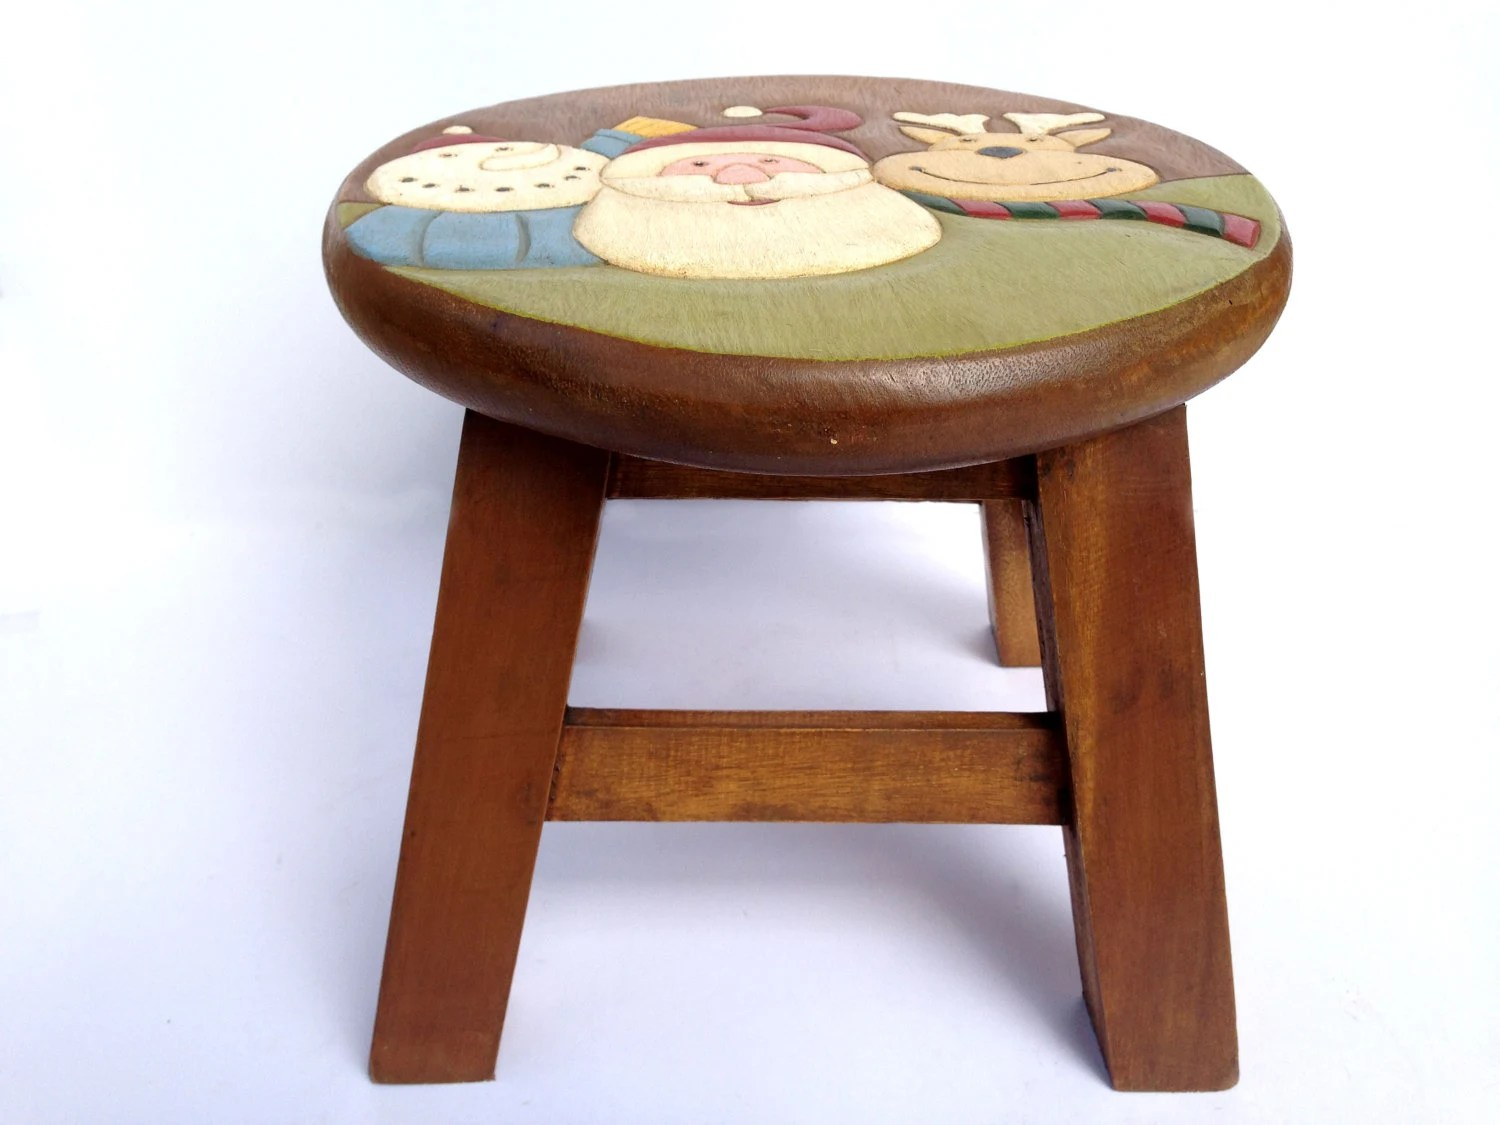 Kids Wooden Stool Santa Stool Kids Stool Sitting Stool Hand Painted Wooden Stool